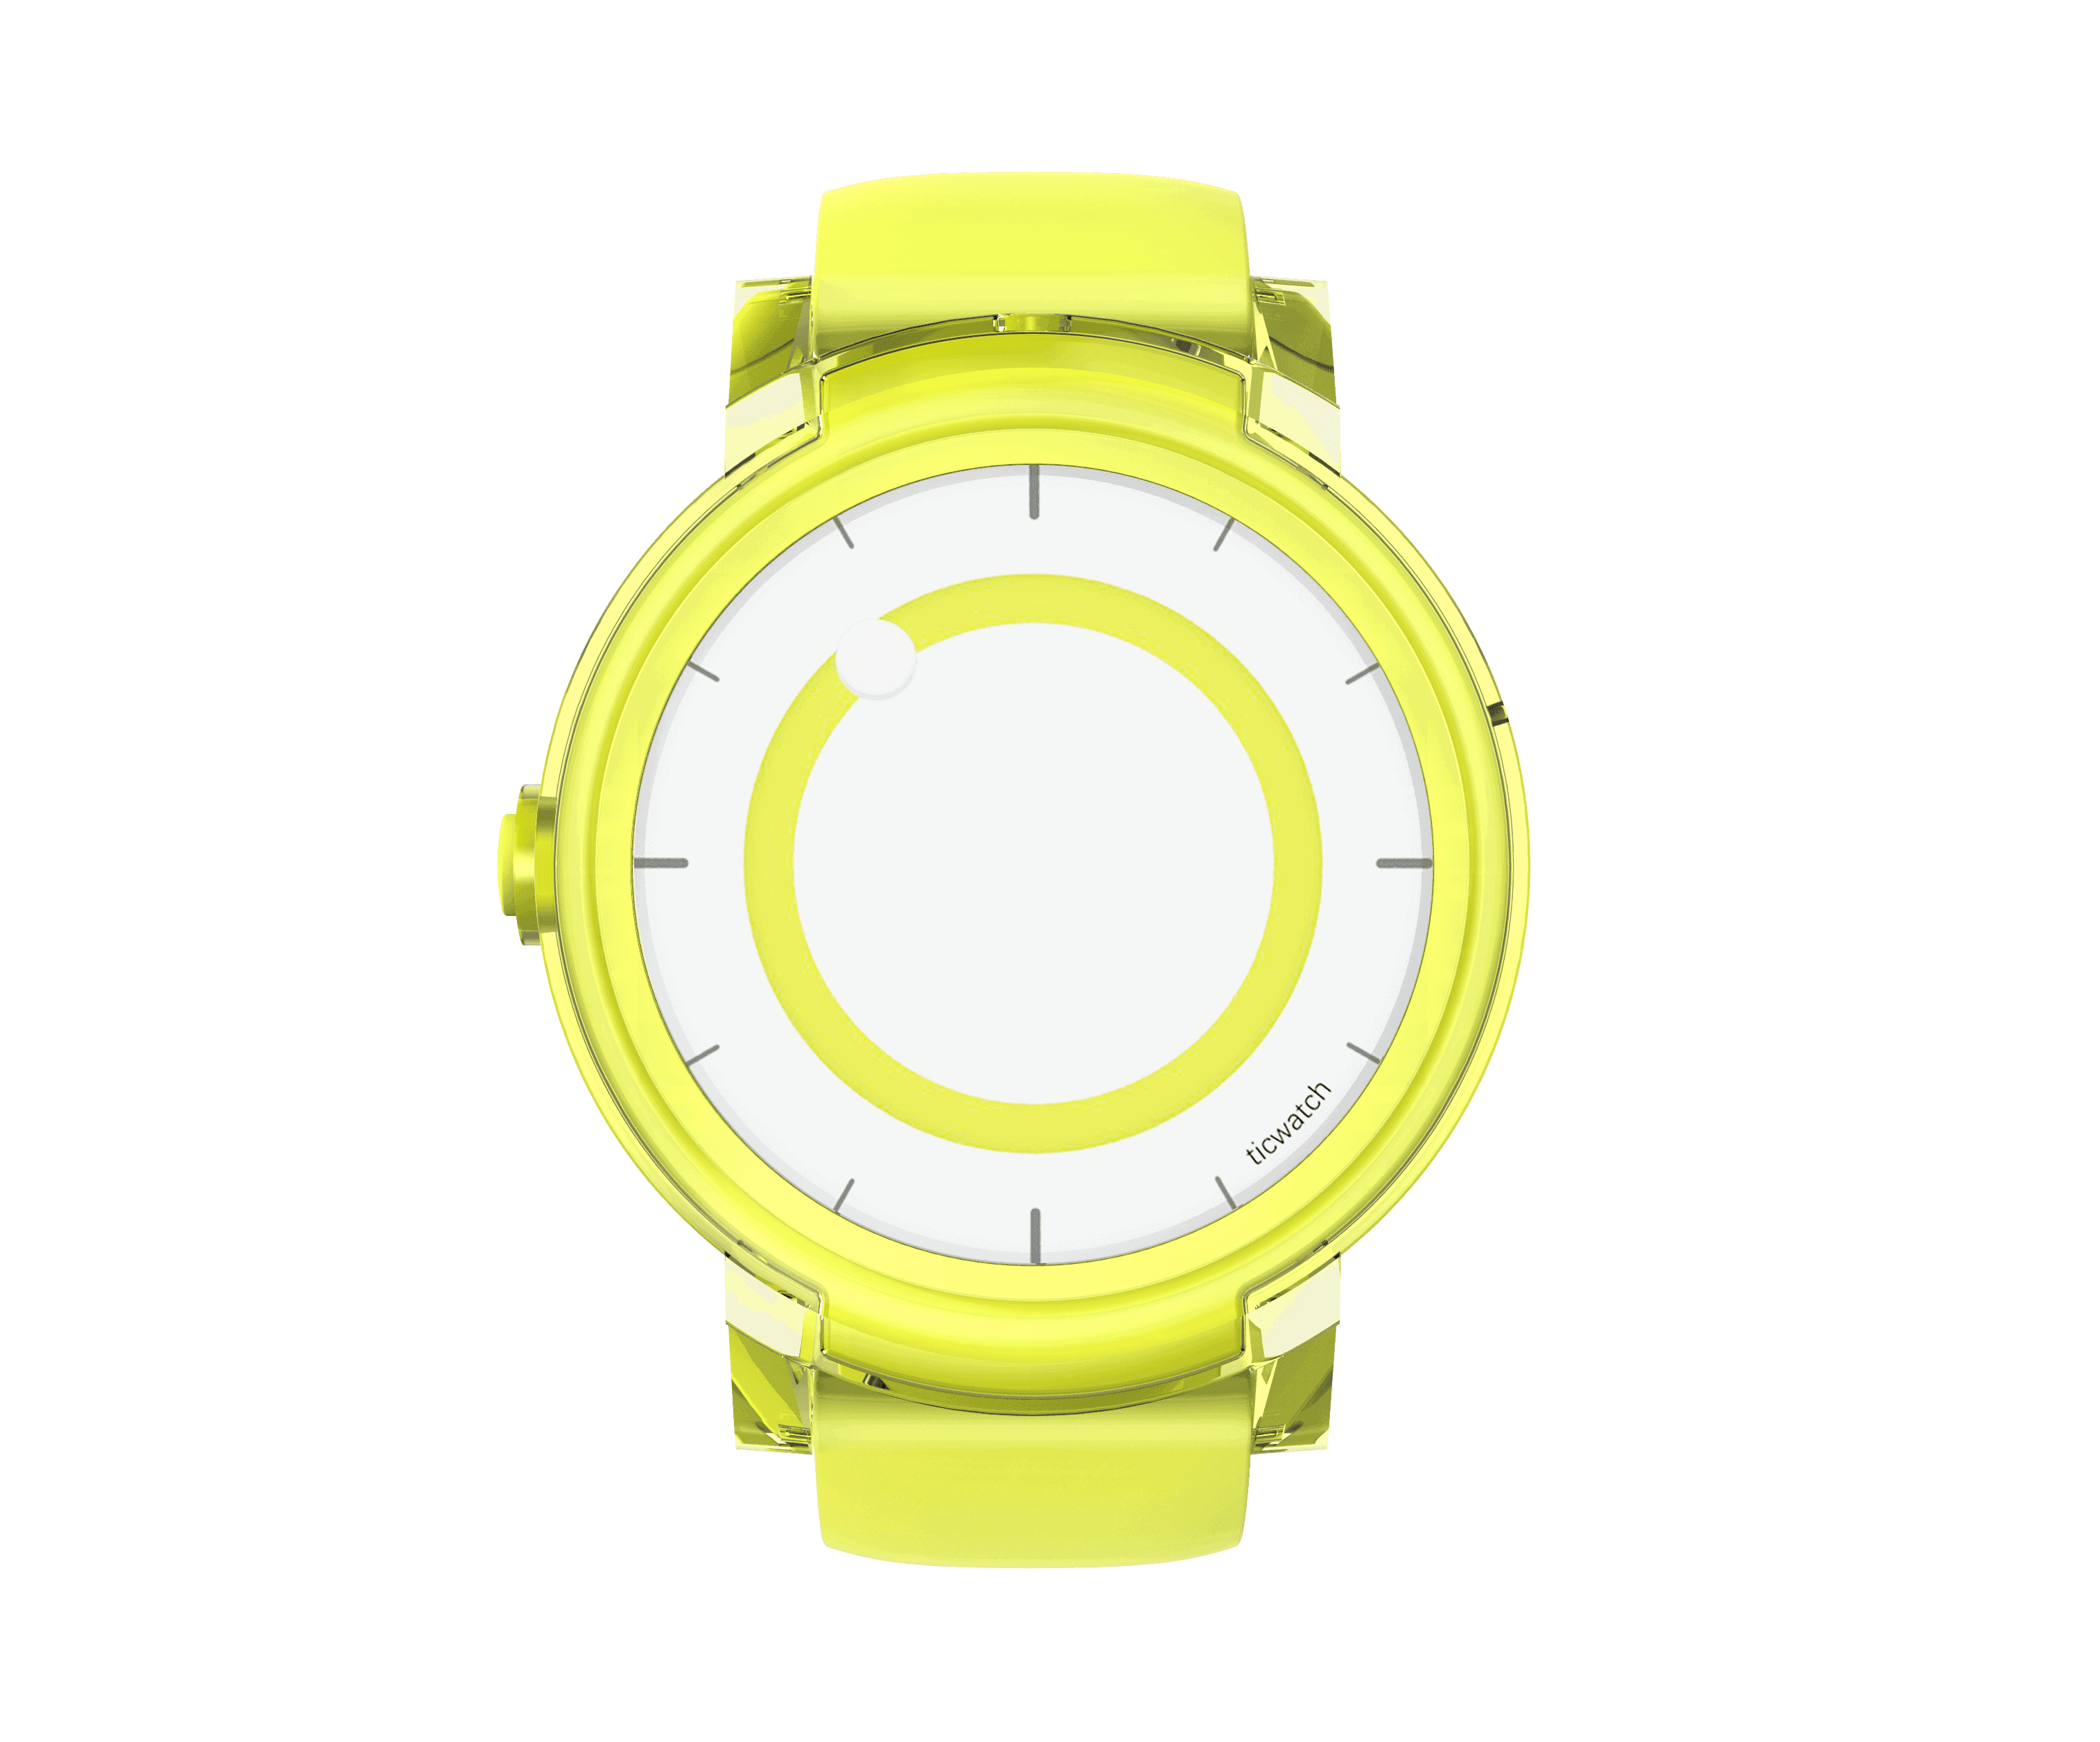 Express yellow front dial